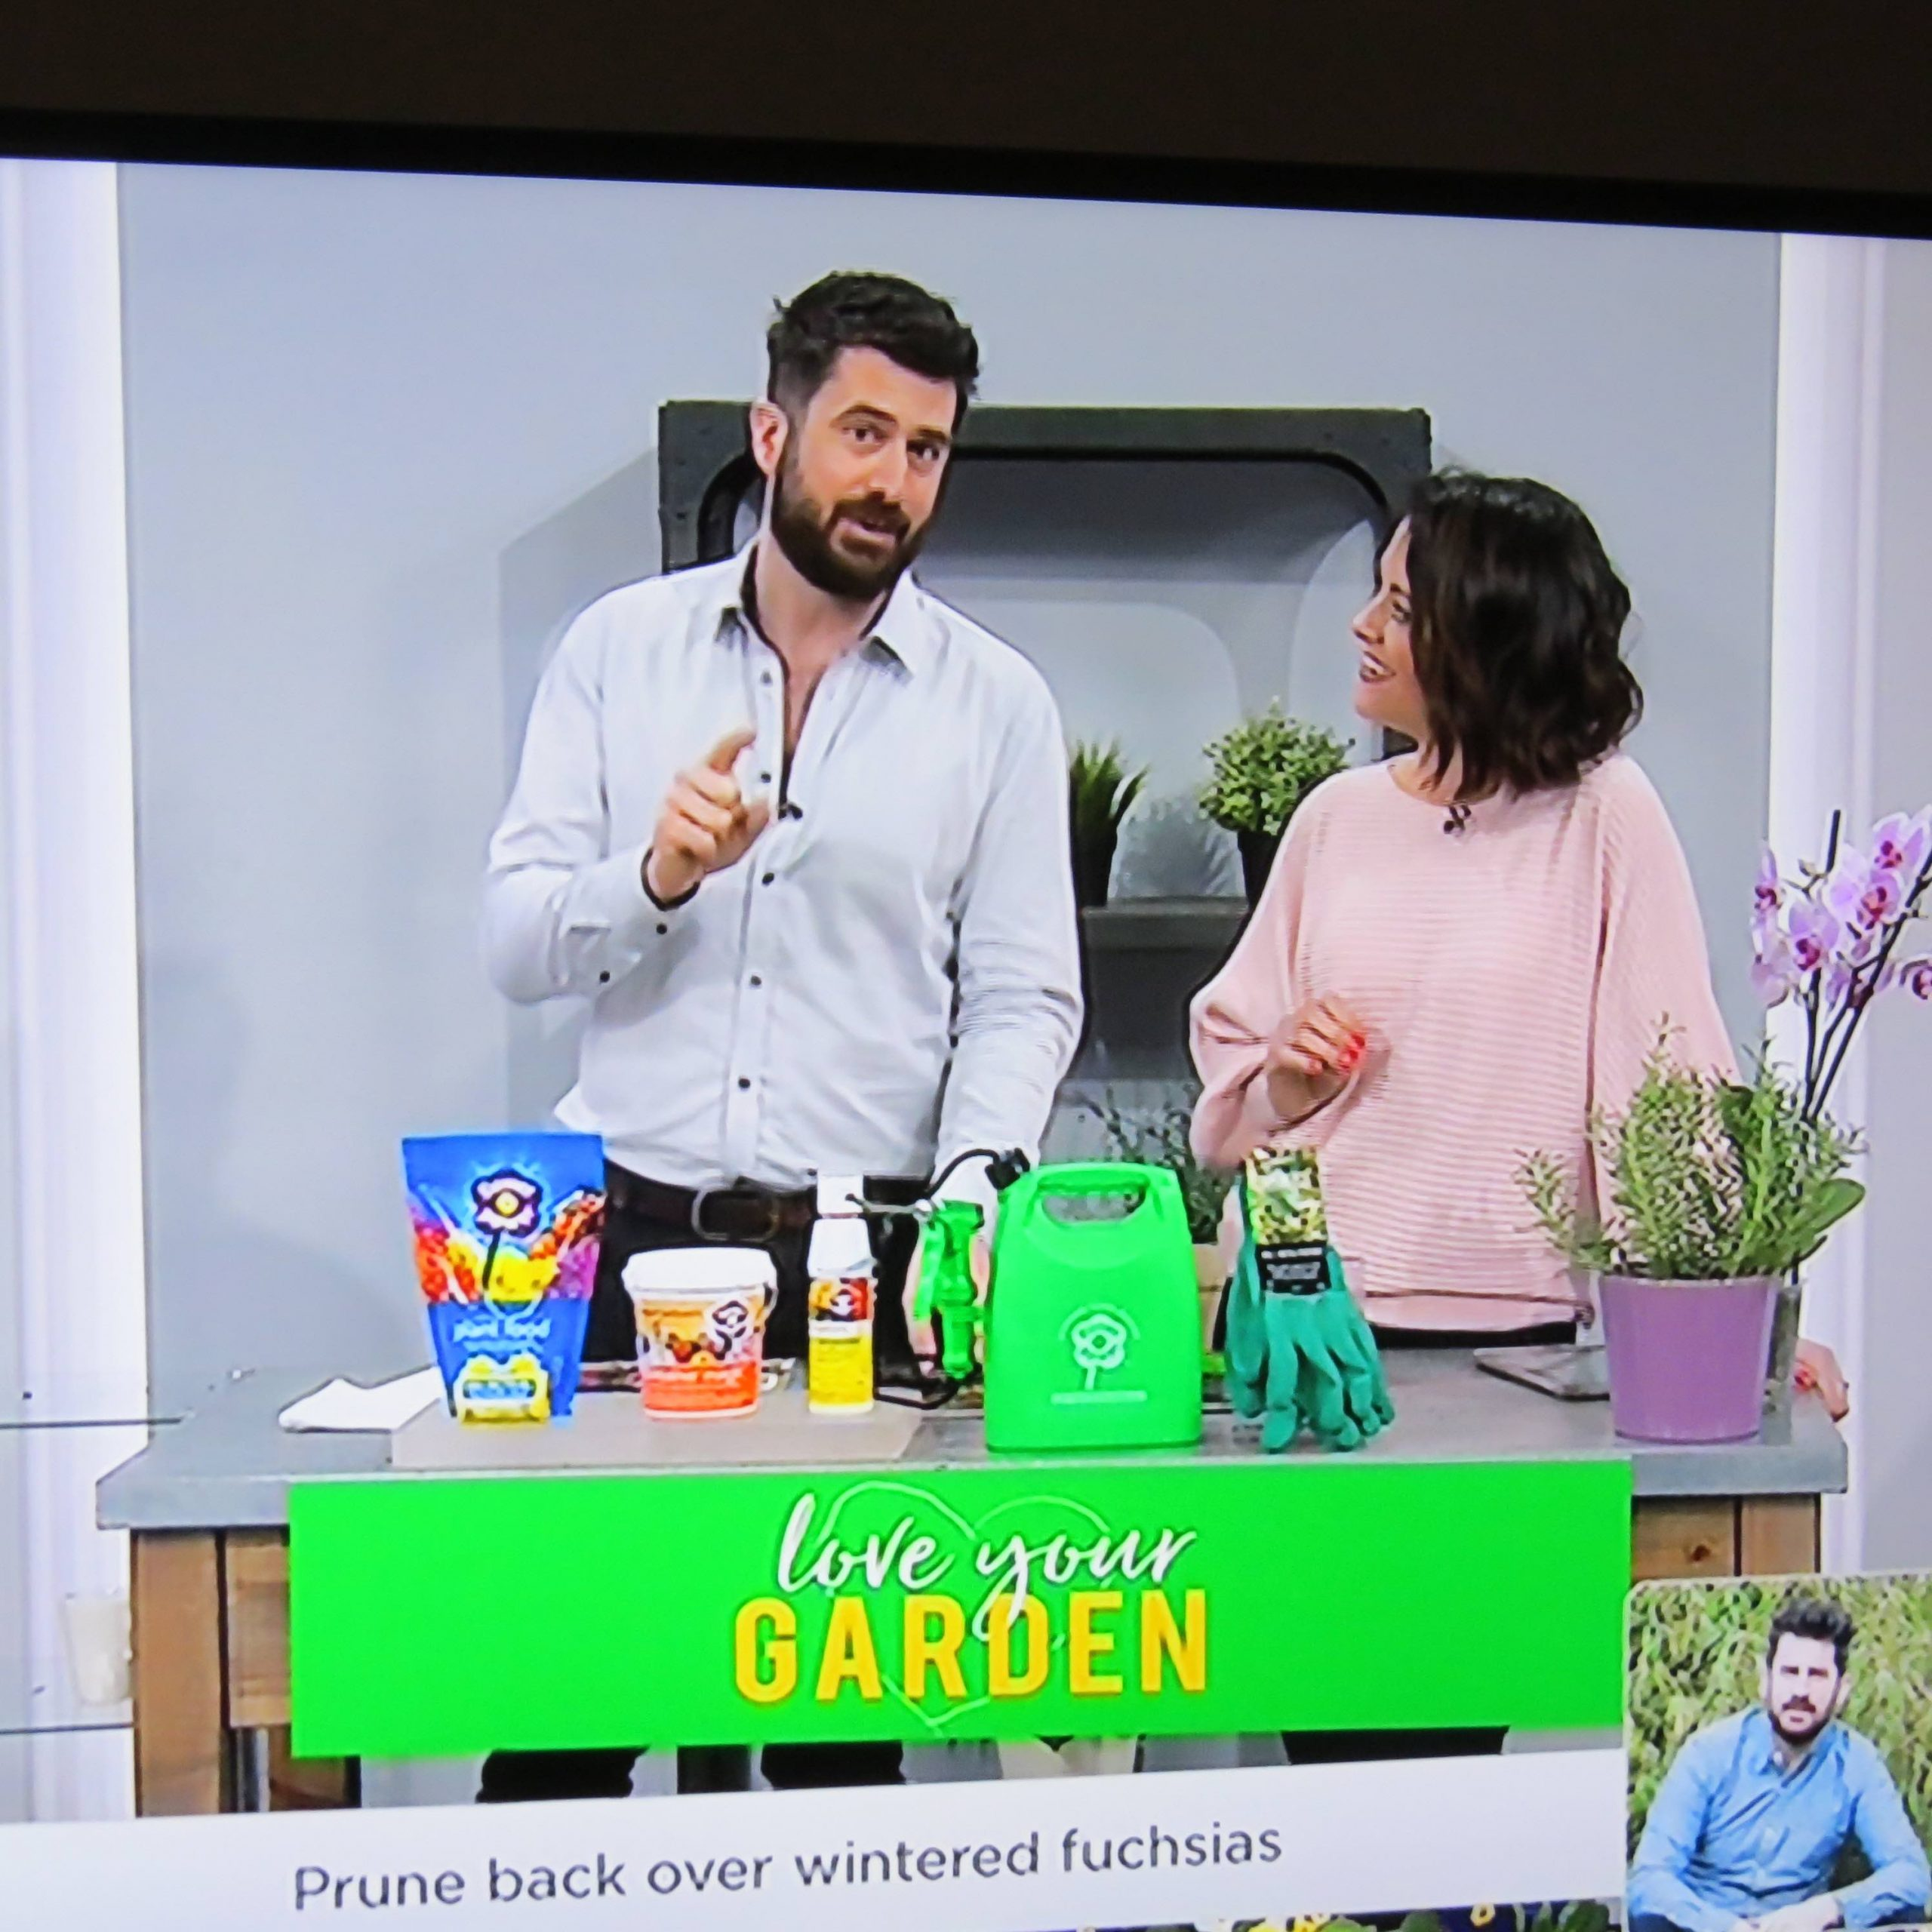 Michael Perry on GVC shopping channel